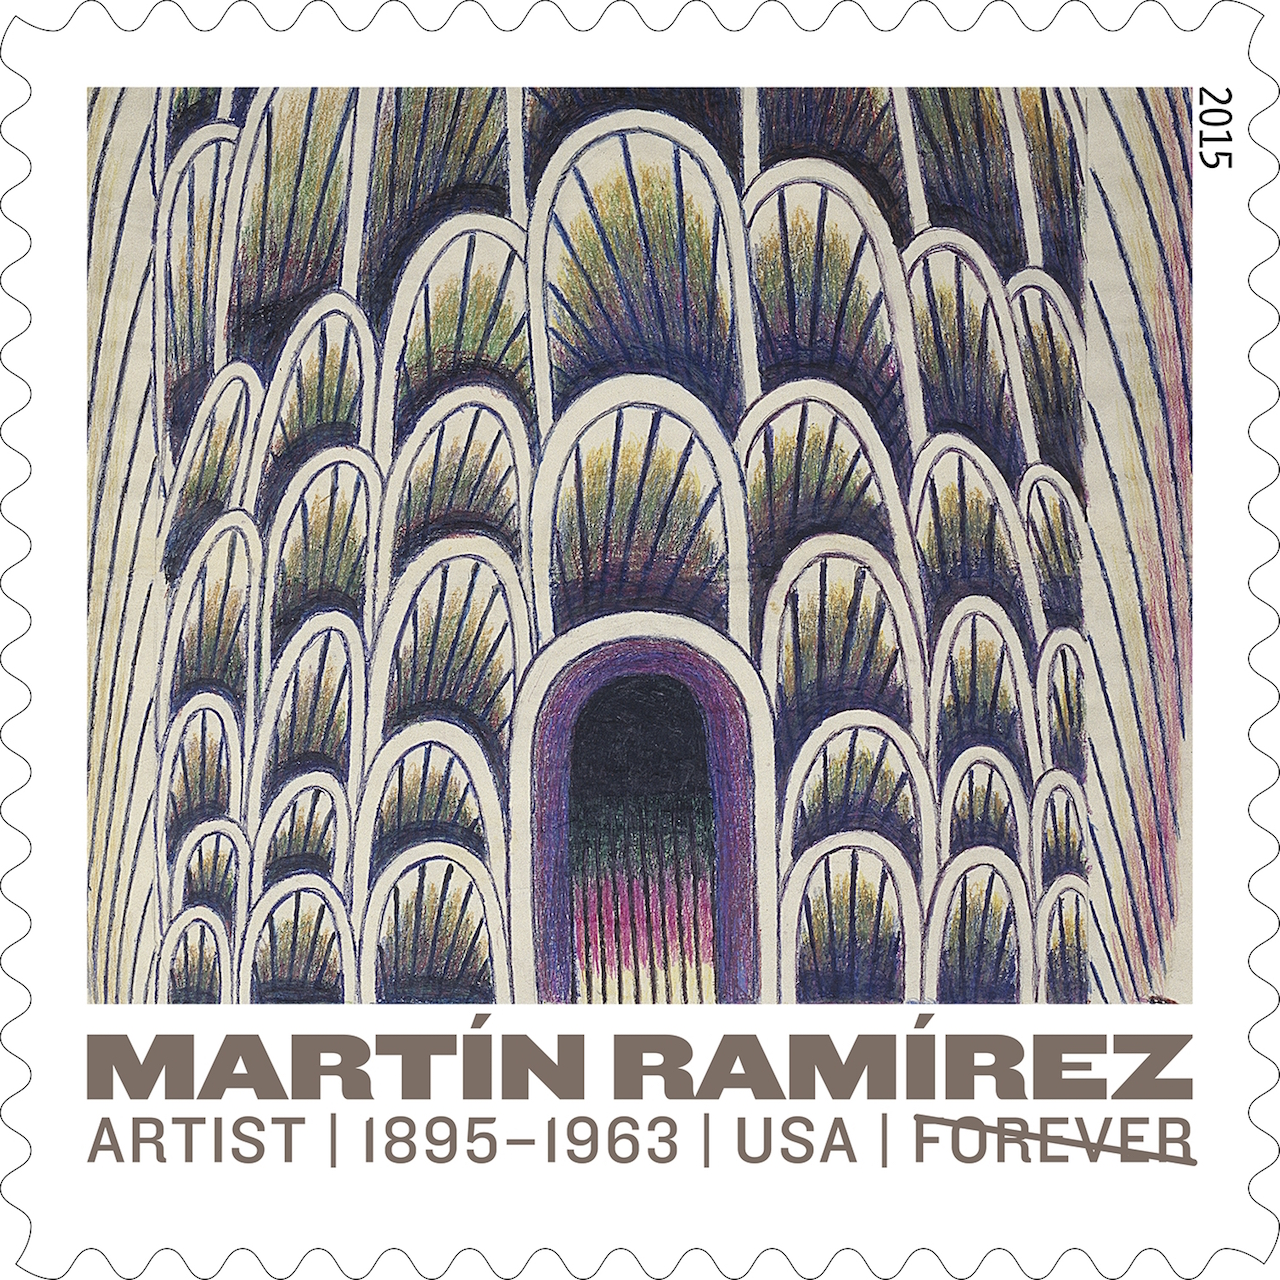 """Martín Ramírez,""""Untitled (Tunnel with Cars and Buses)"""" (1954), reproduced as one of five new 'Forever' Stamps by the United States Postal Service (© 2015 USPS)"""